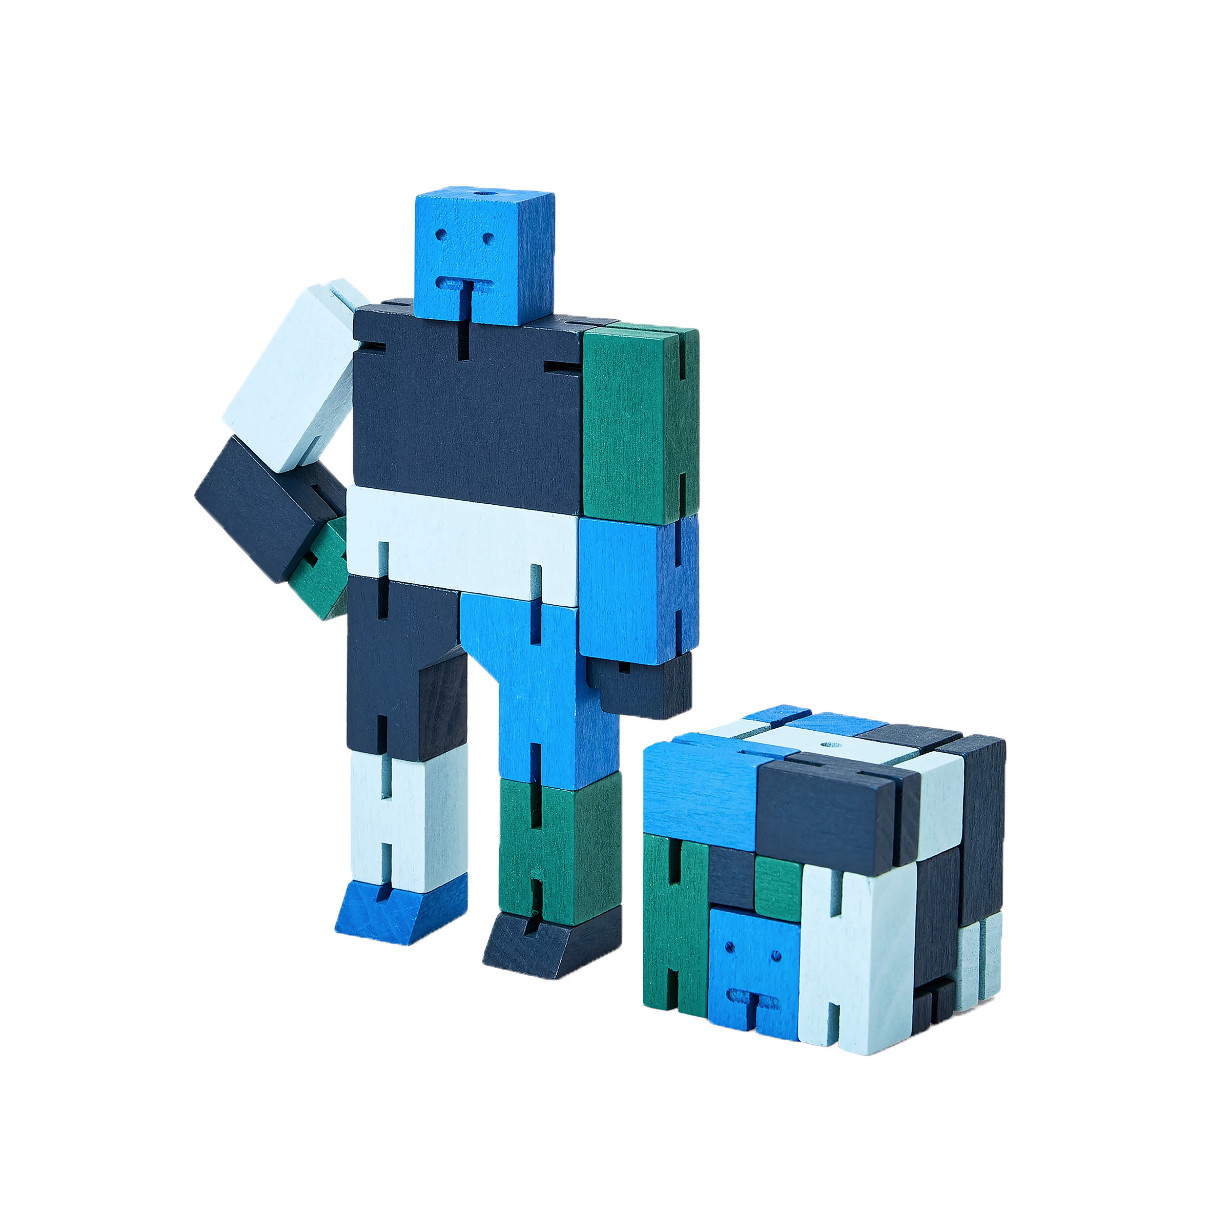 Areaware Cubebot Capsule Small - Blue Multi